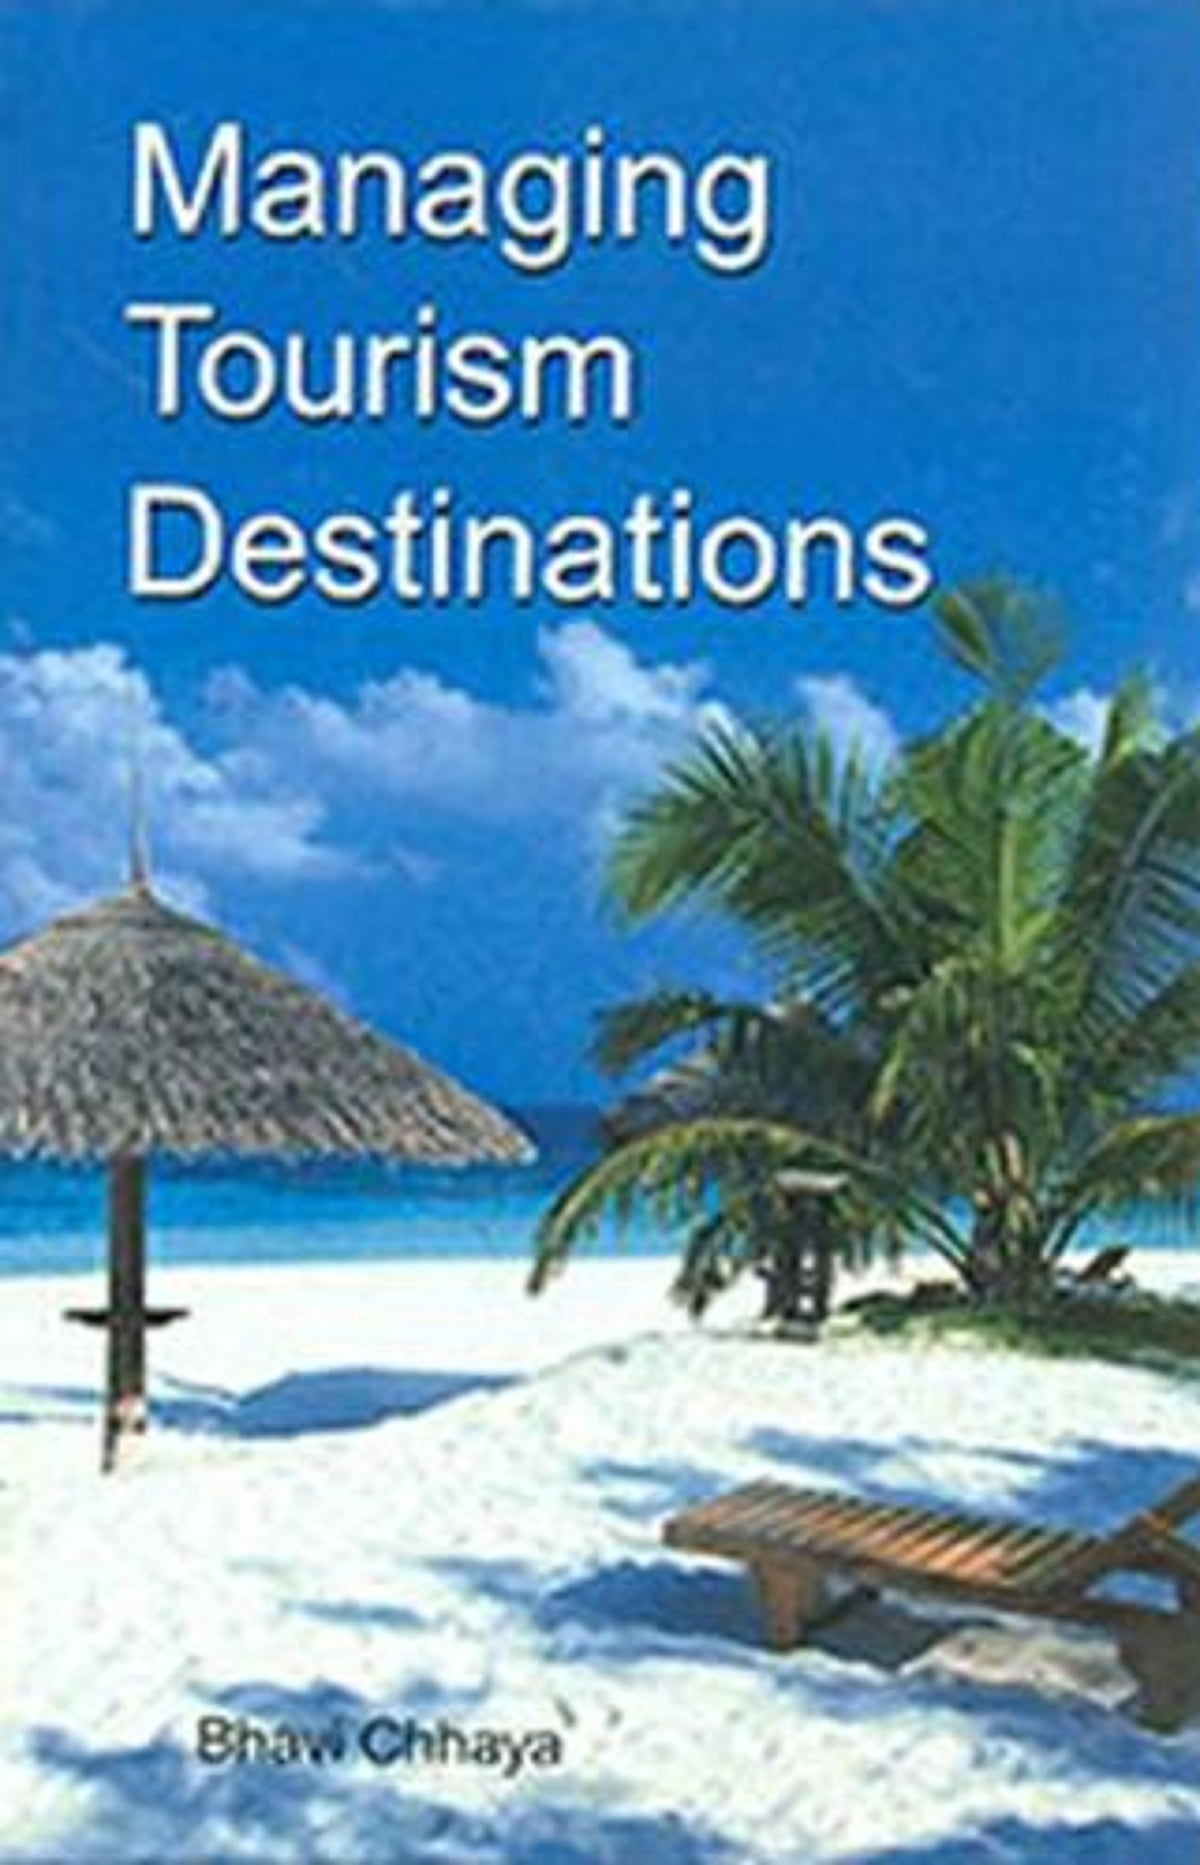 Tourism Destinations Managing Tourism Destinations Ebook By Bhavi Chhaya Rakuten Kobo